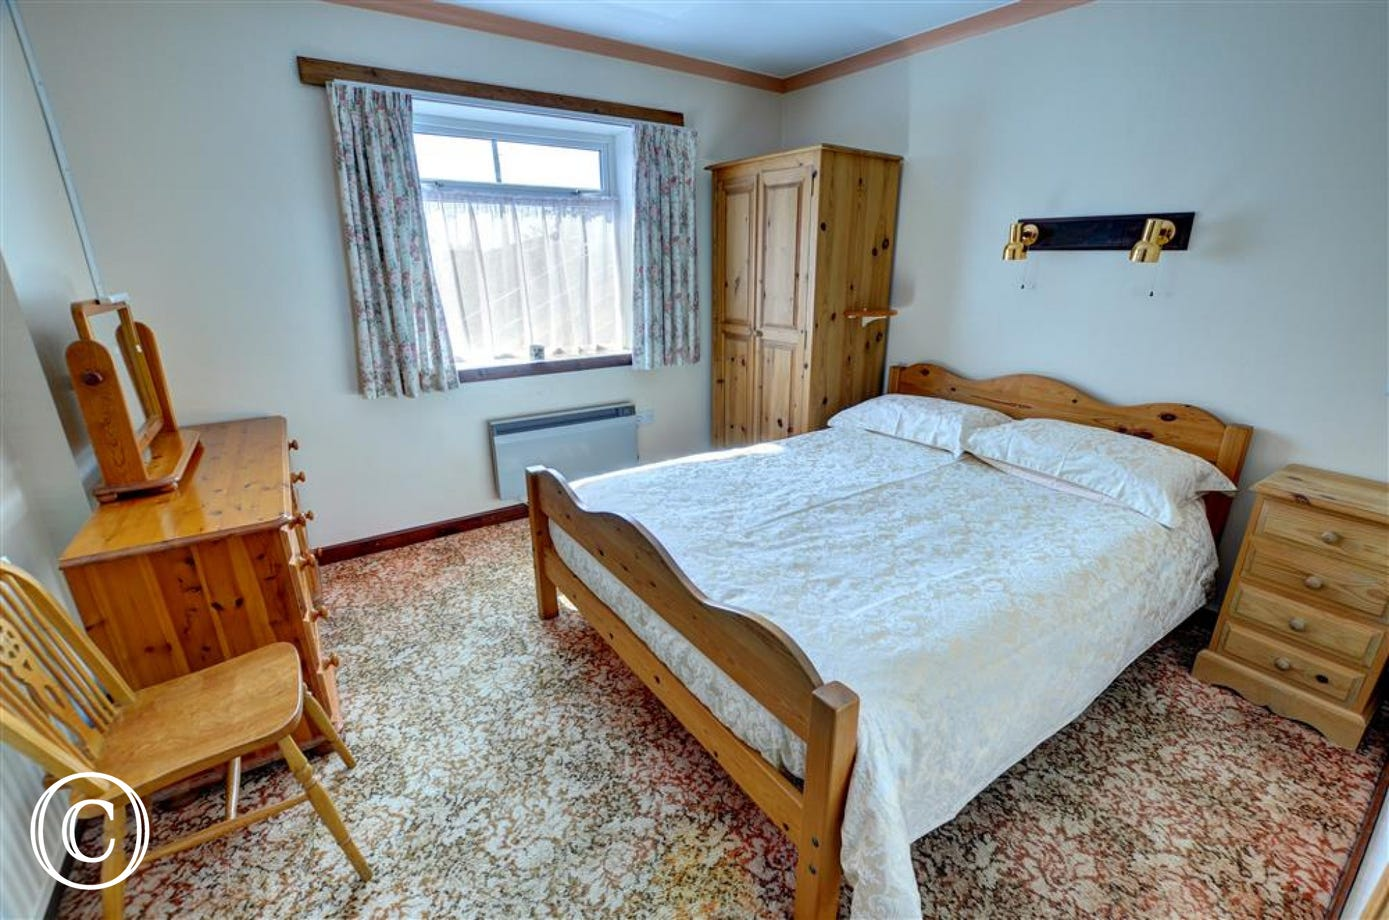 The double bedroom is furnished with a pine suite